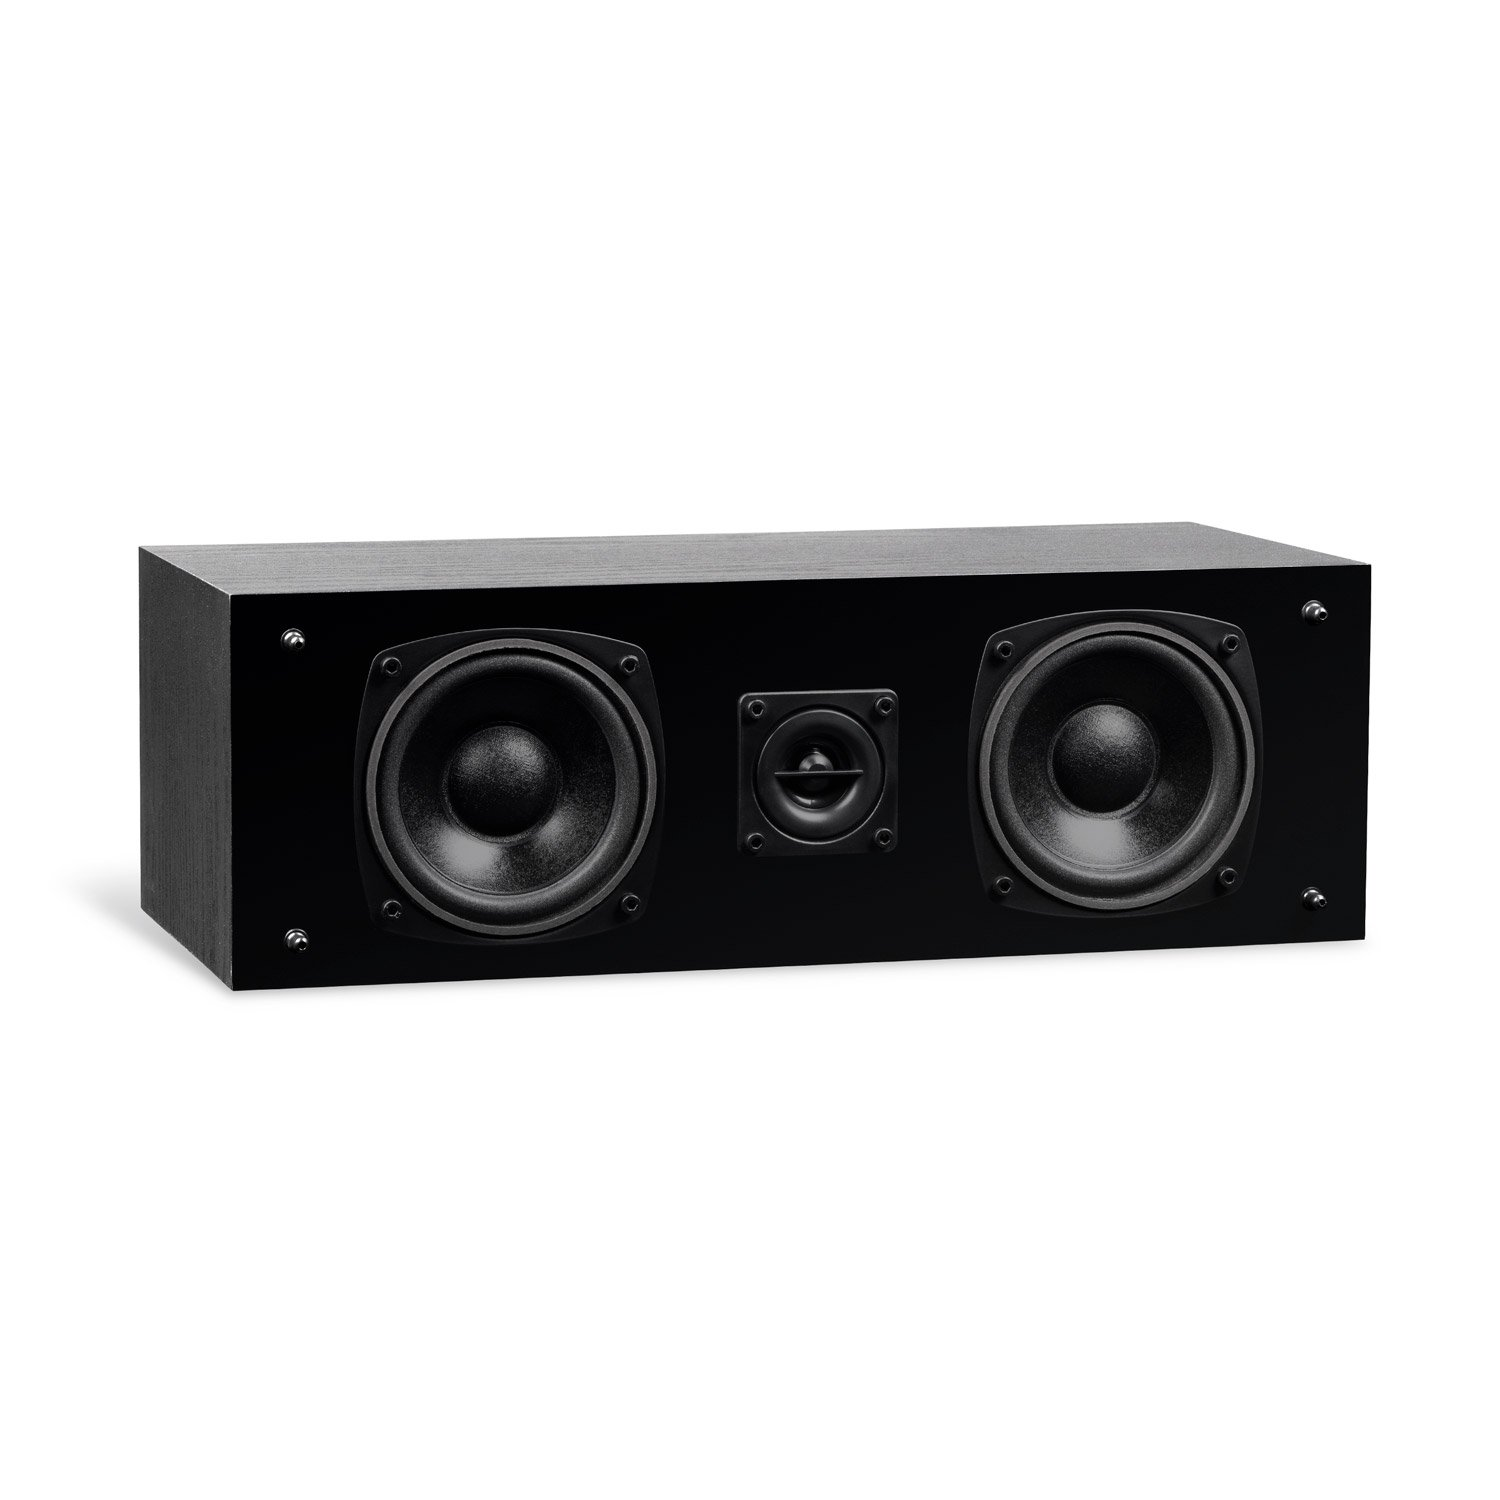 Elite Series Two-Way Center Channel Speaker